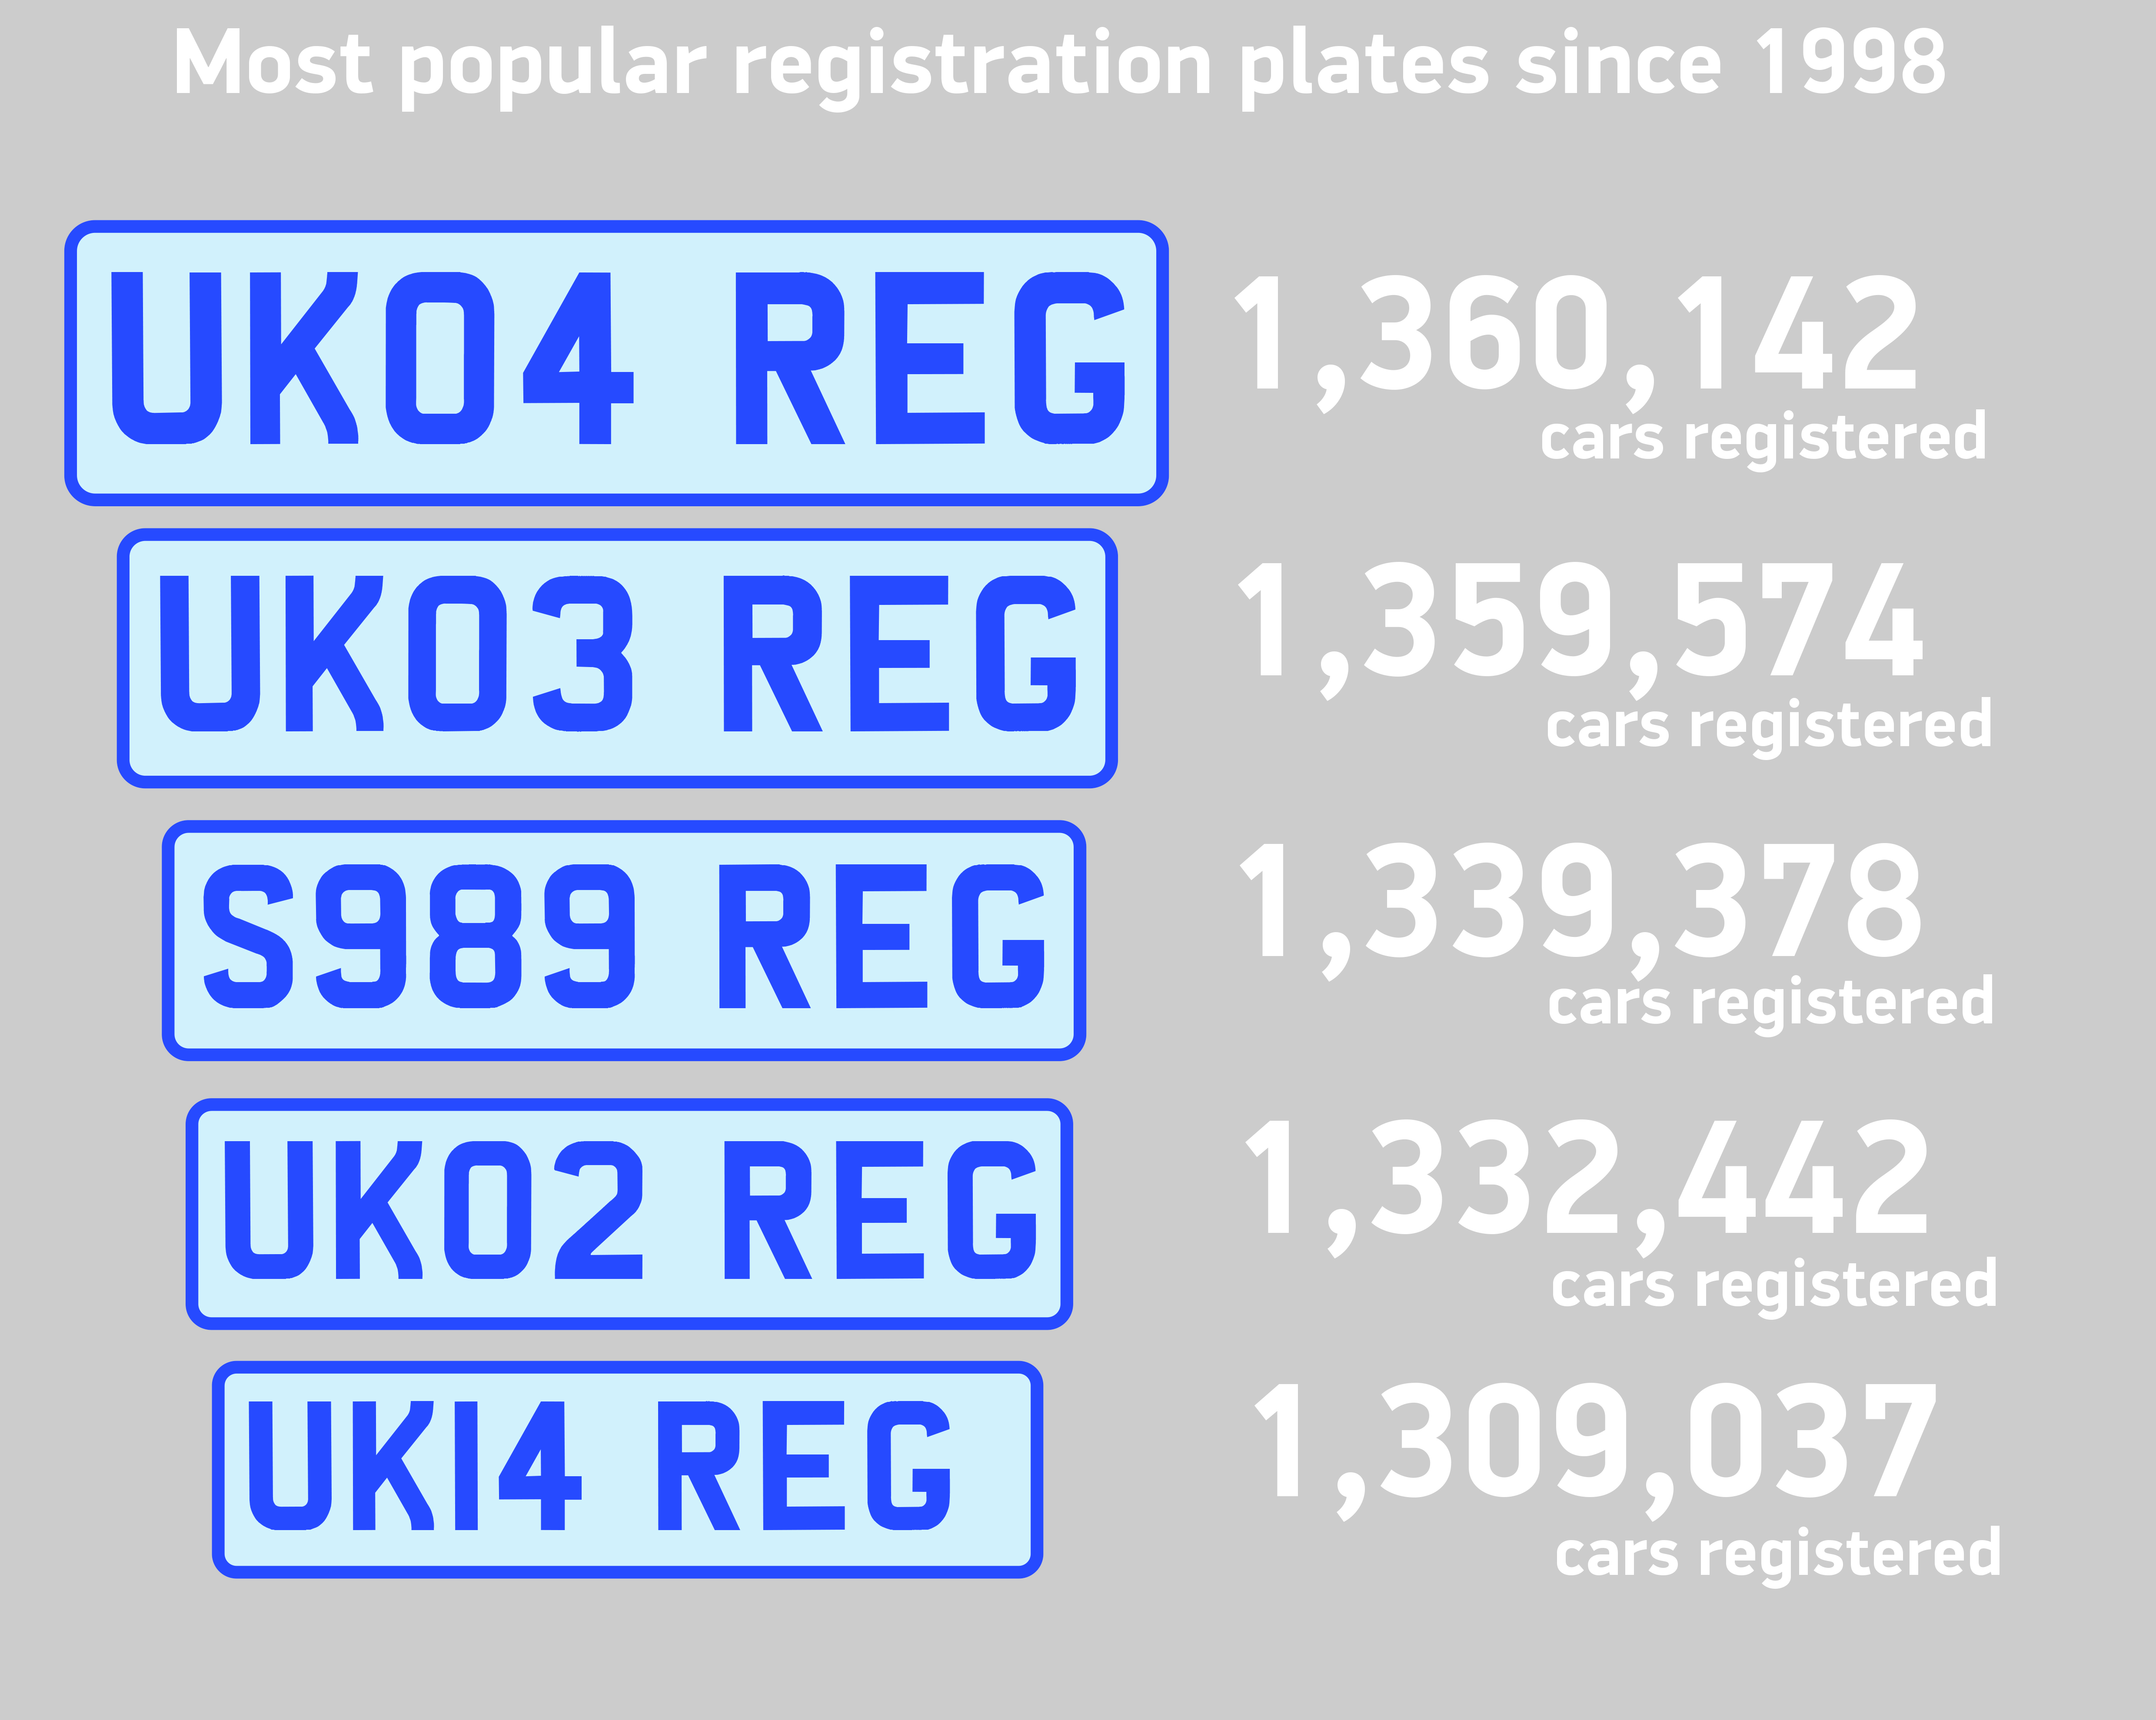 Most popular registration plates since 1998